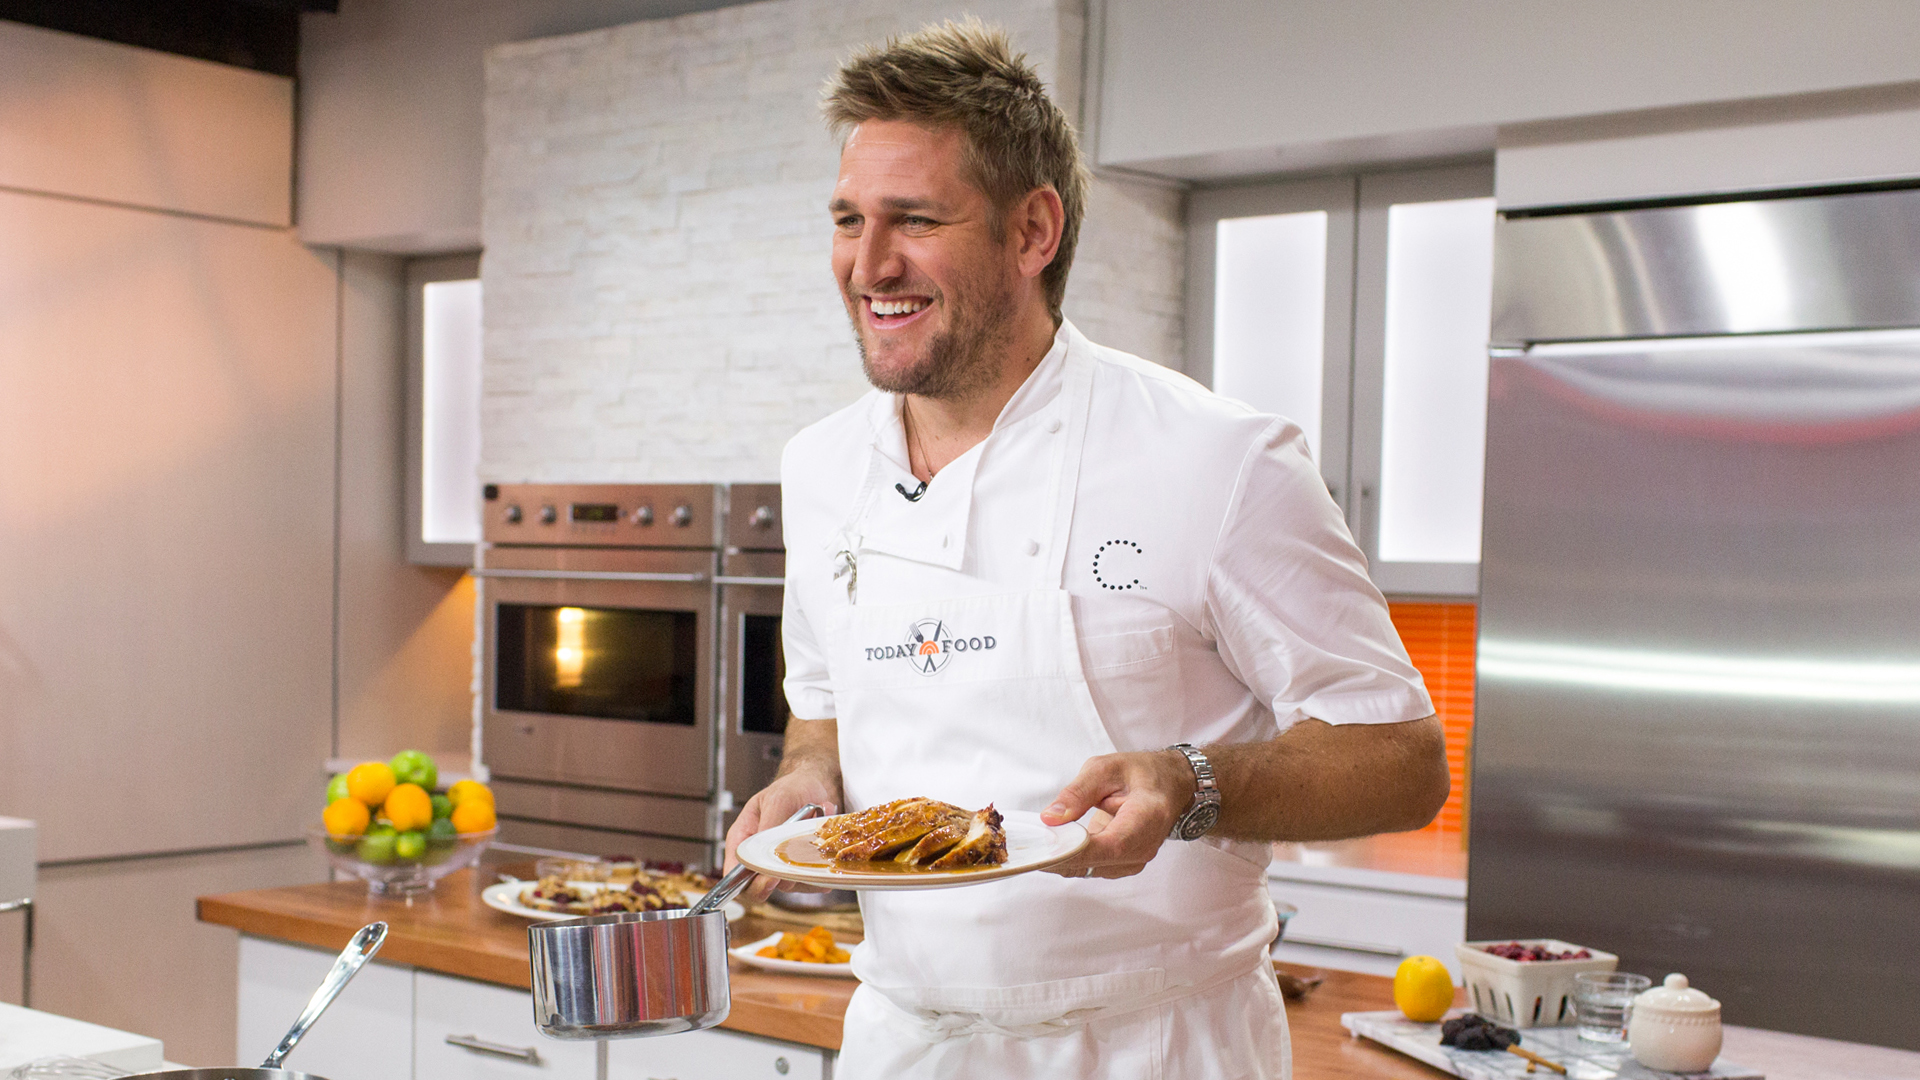 The Kitchen Show Recipes Today